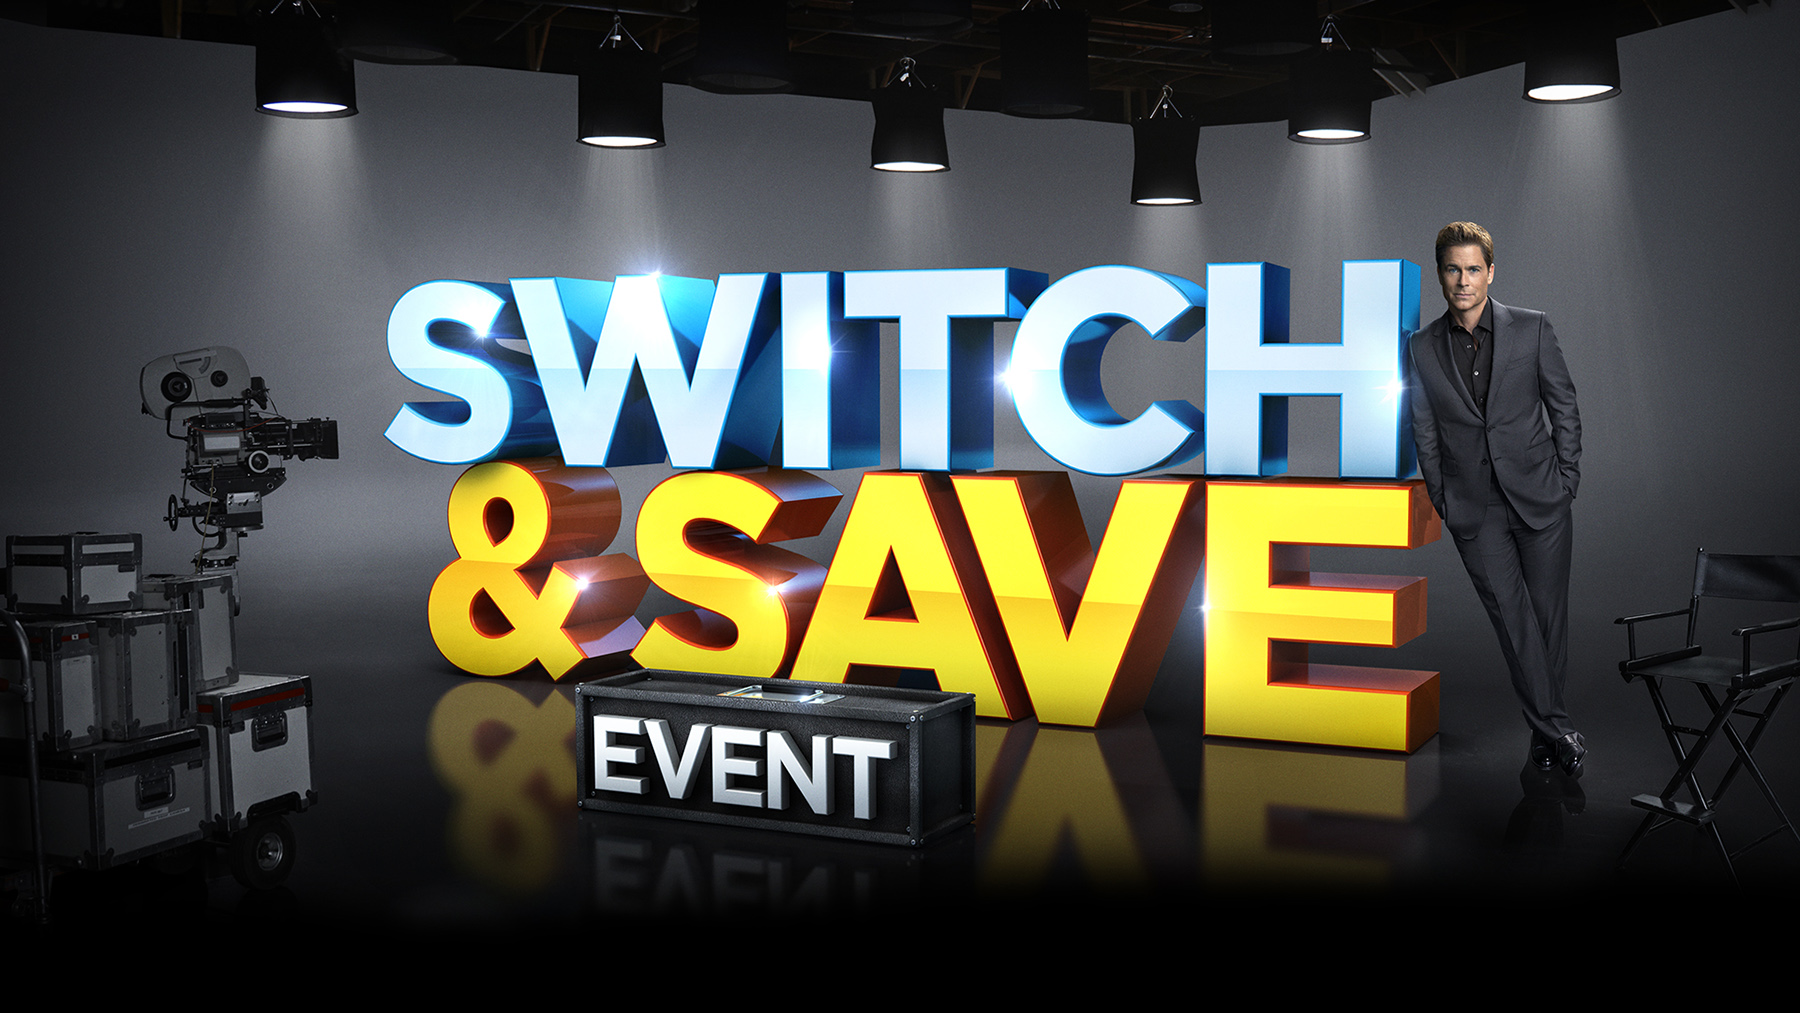 SwitchNSave